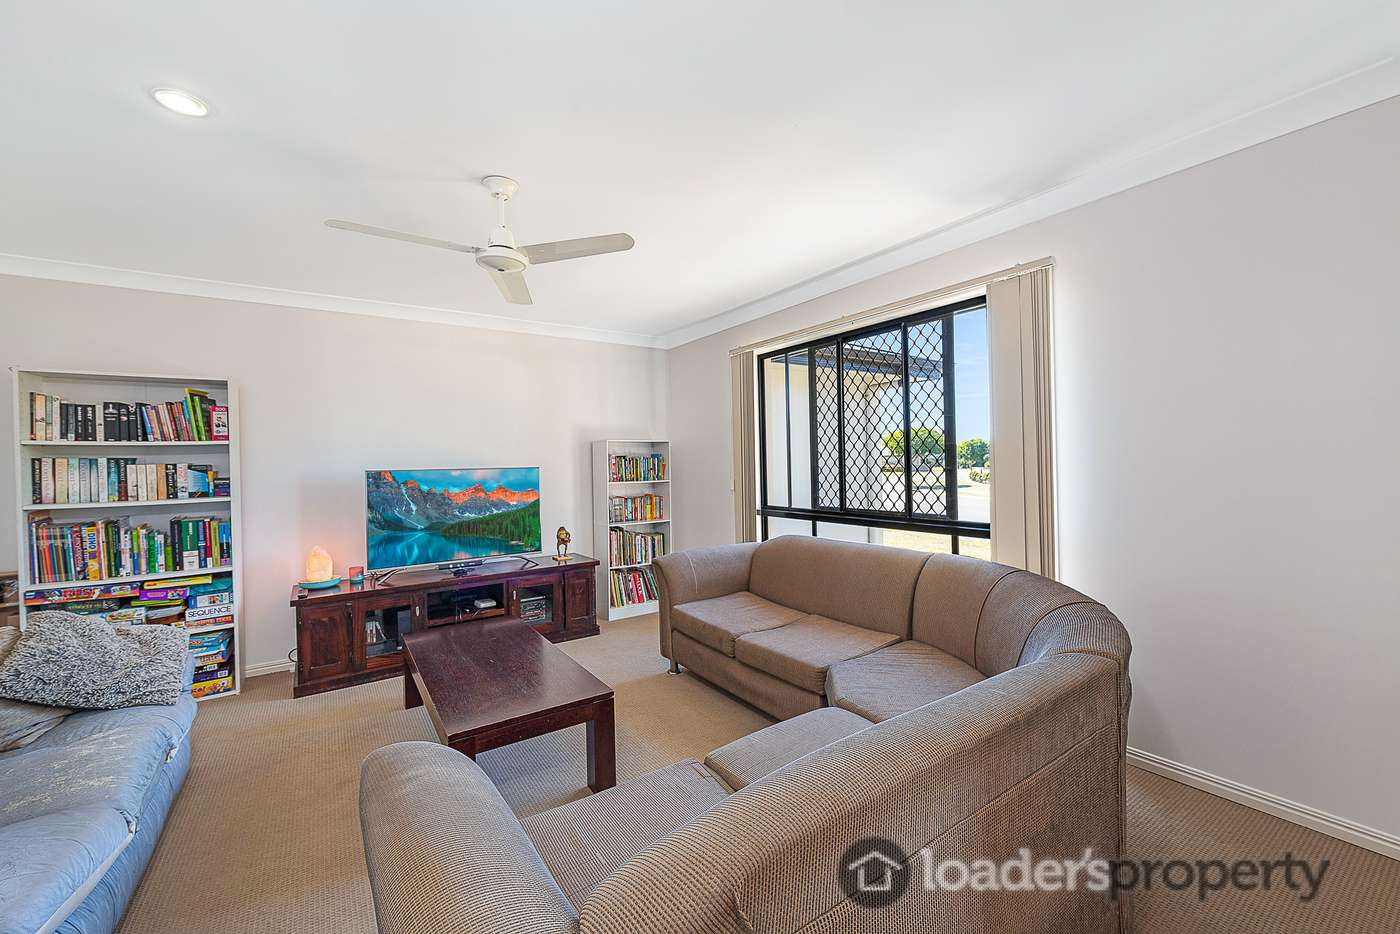 Sixth view of Homely house listing, 48 Breeze Dr, Bargara QLD 4670